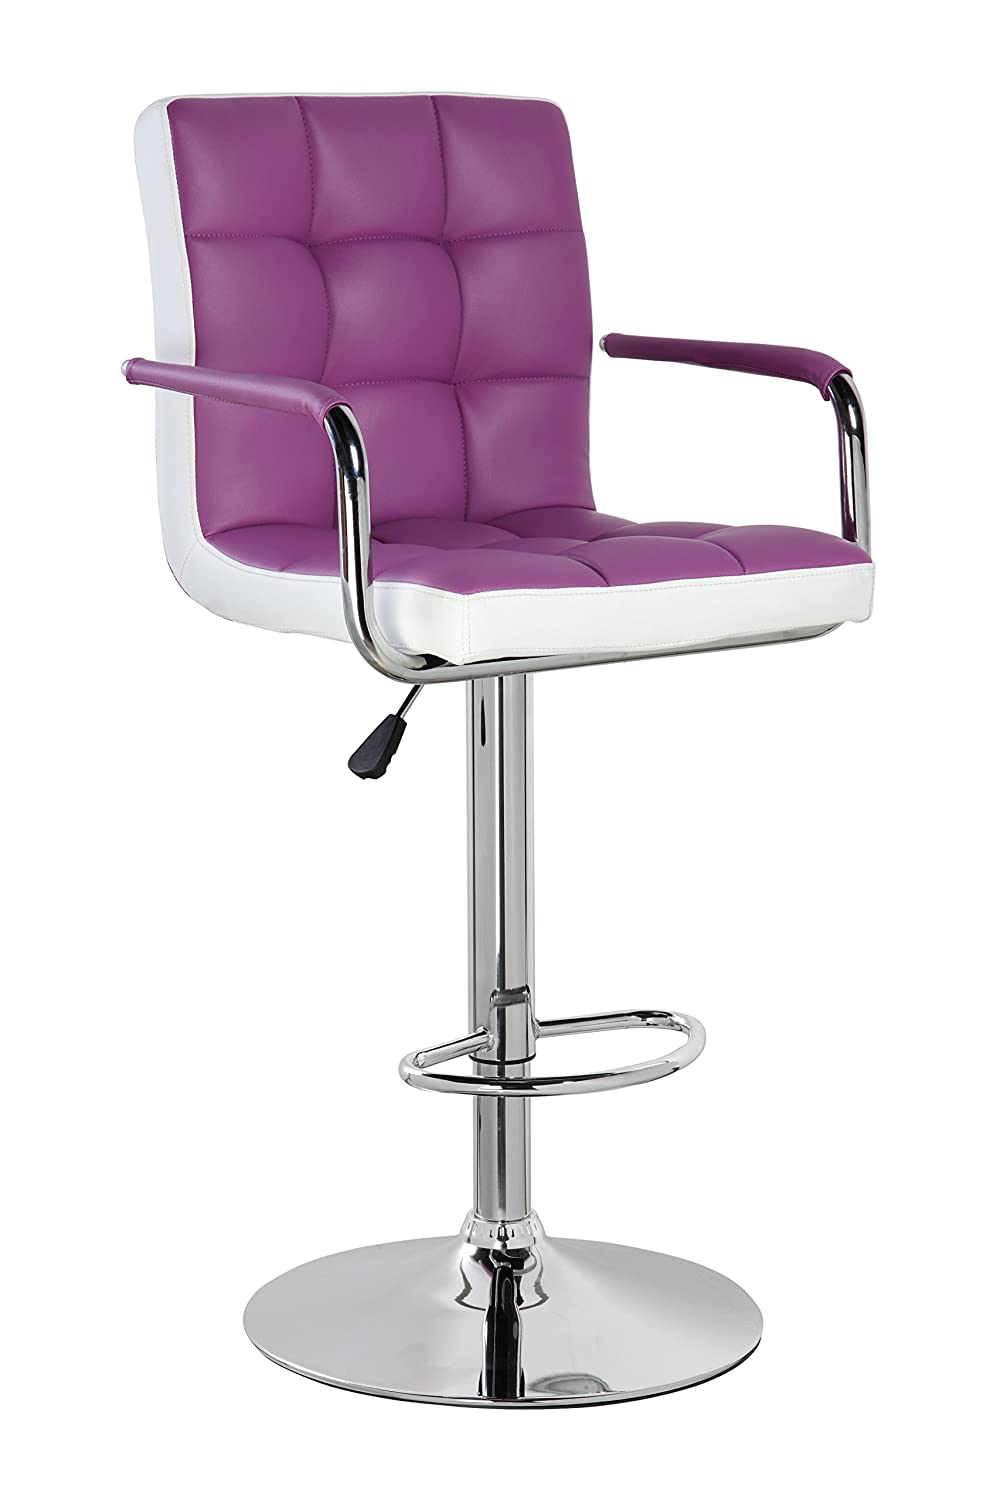 Mid back classic adjustable height bar stool Orchid Purple and Frost White